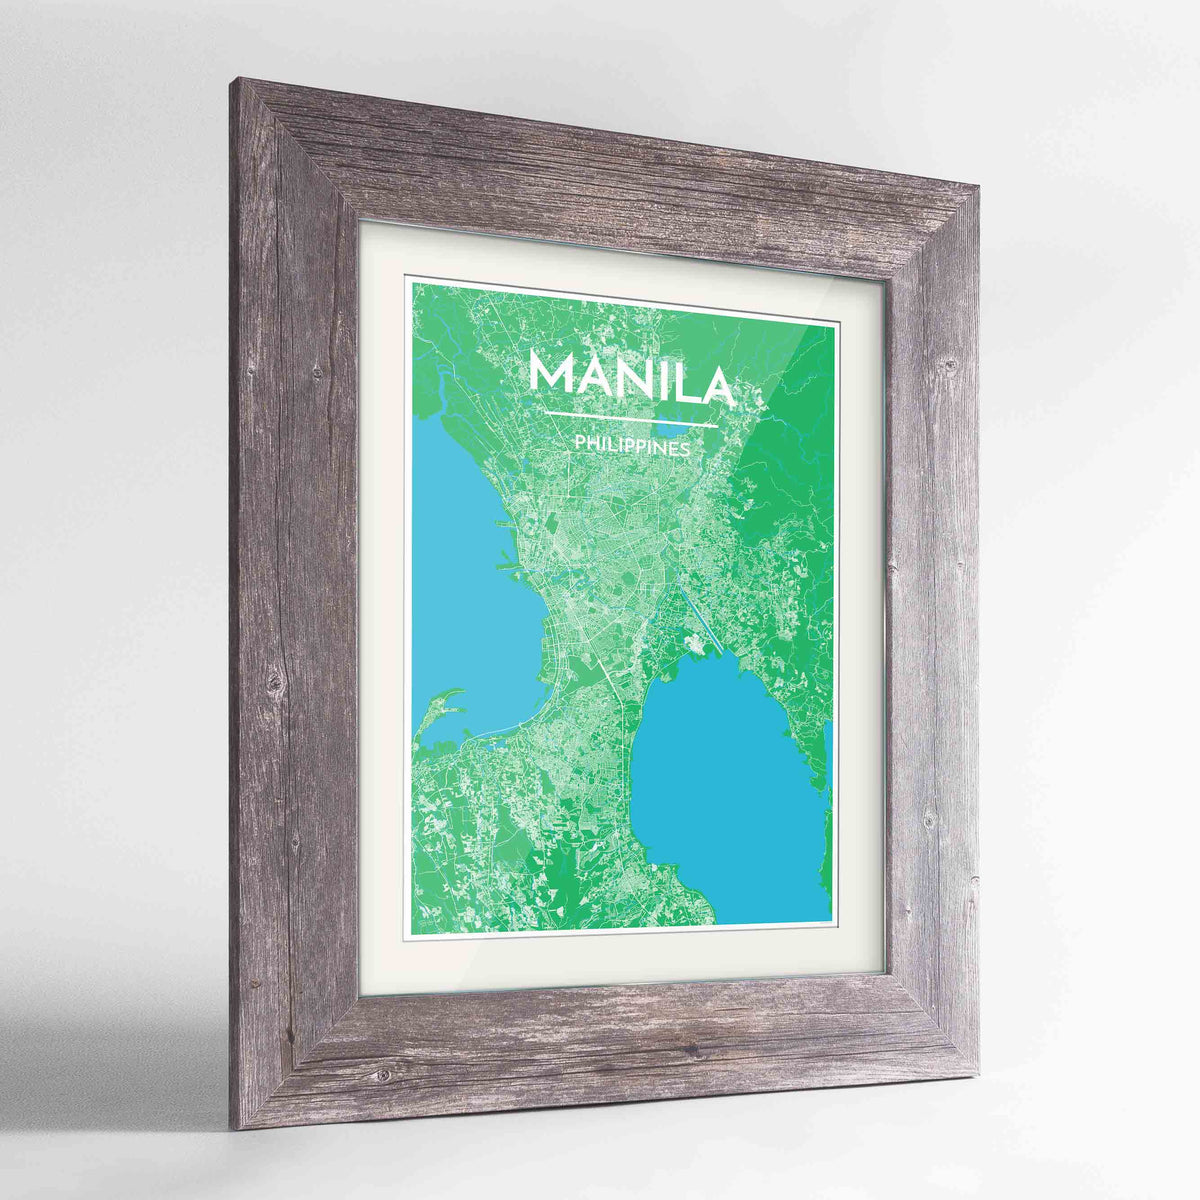 "Framed Manila Map Art Print 24x36"" Western Grey frame Point Two Design Group"